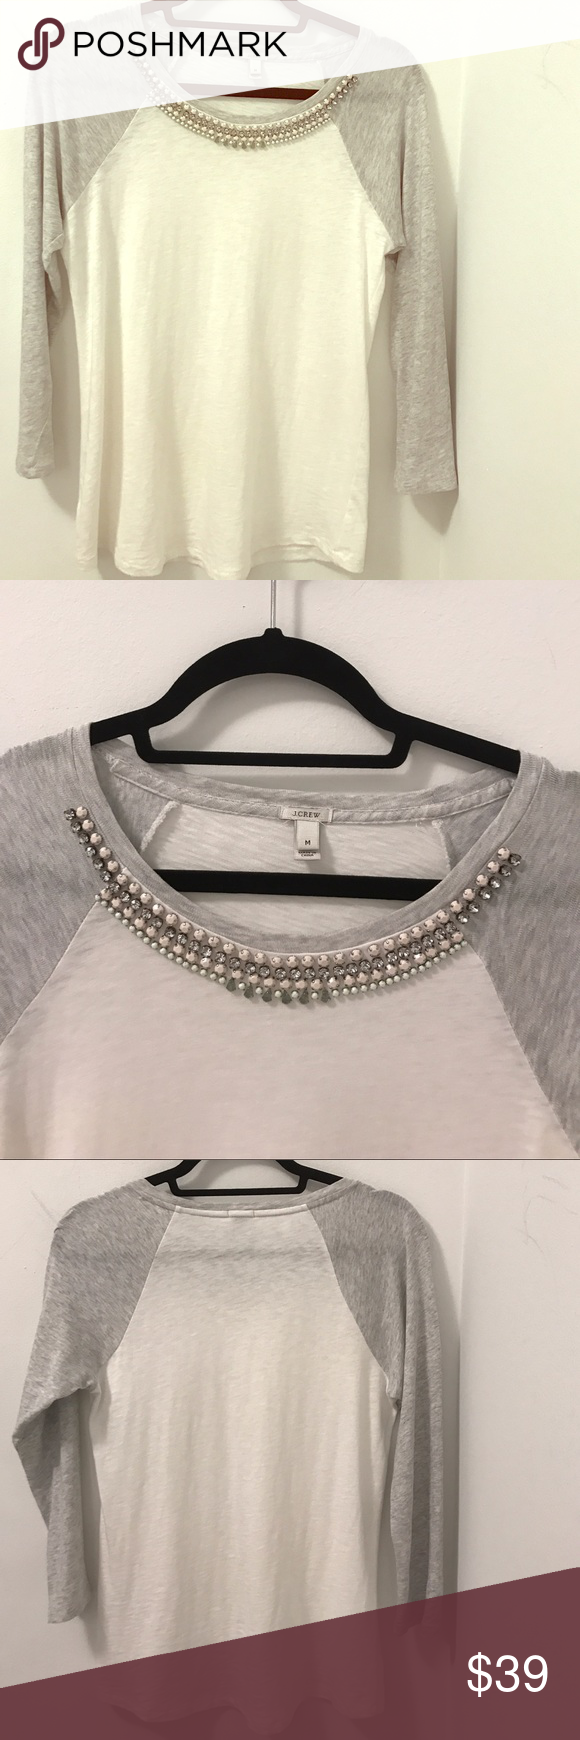 J.Crew dressy baseball tee with studded neckline A fun and dressy take on the classic baseball Tee with a rhinestone studded neckline by J.Crew. Excellent condition, only worn once! Size M. White and grey. Retail $65+tax. J. Crew Tops Tees - Long Sleeve